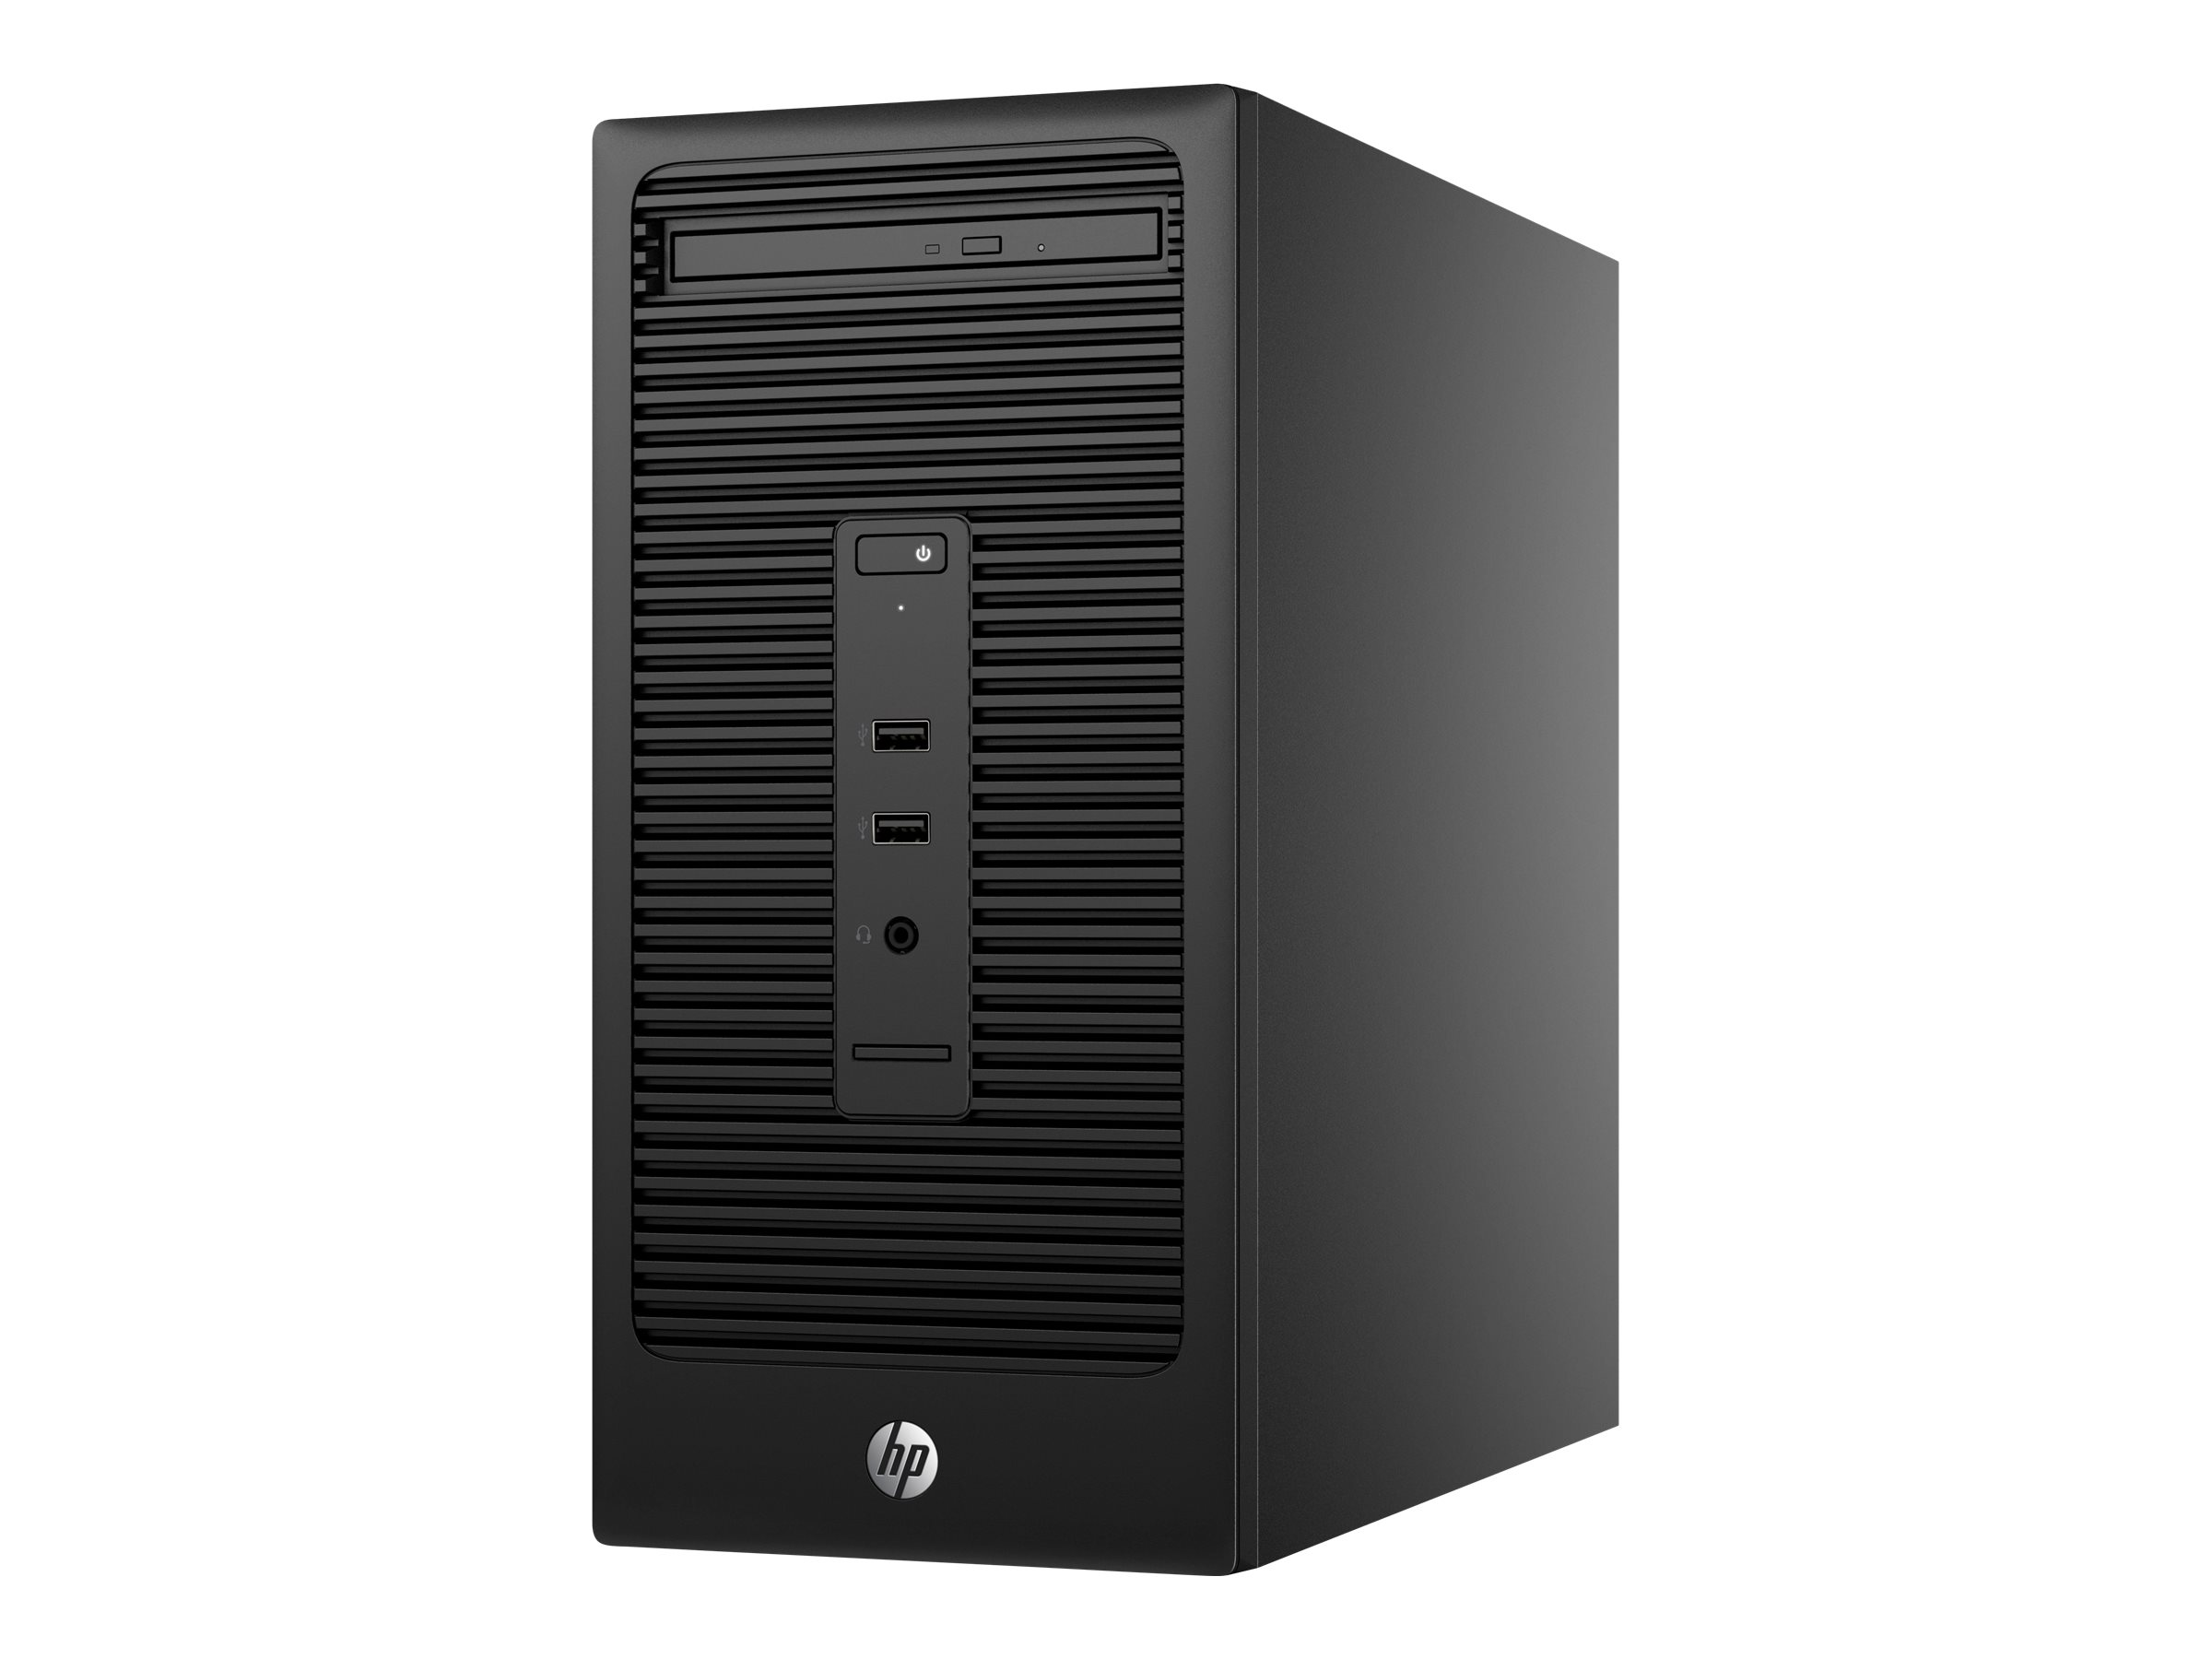 HP 285 G2 - Micro Tower - 1 x A8 PRO-7600B / 3.1 GHz - RAM 8 GB - SSD 256 GB - DVD SuperMulti